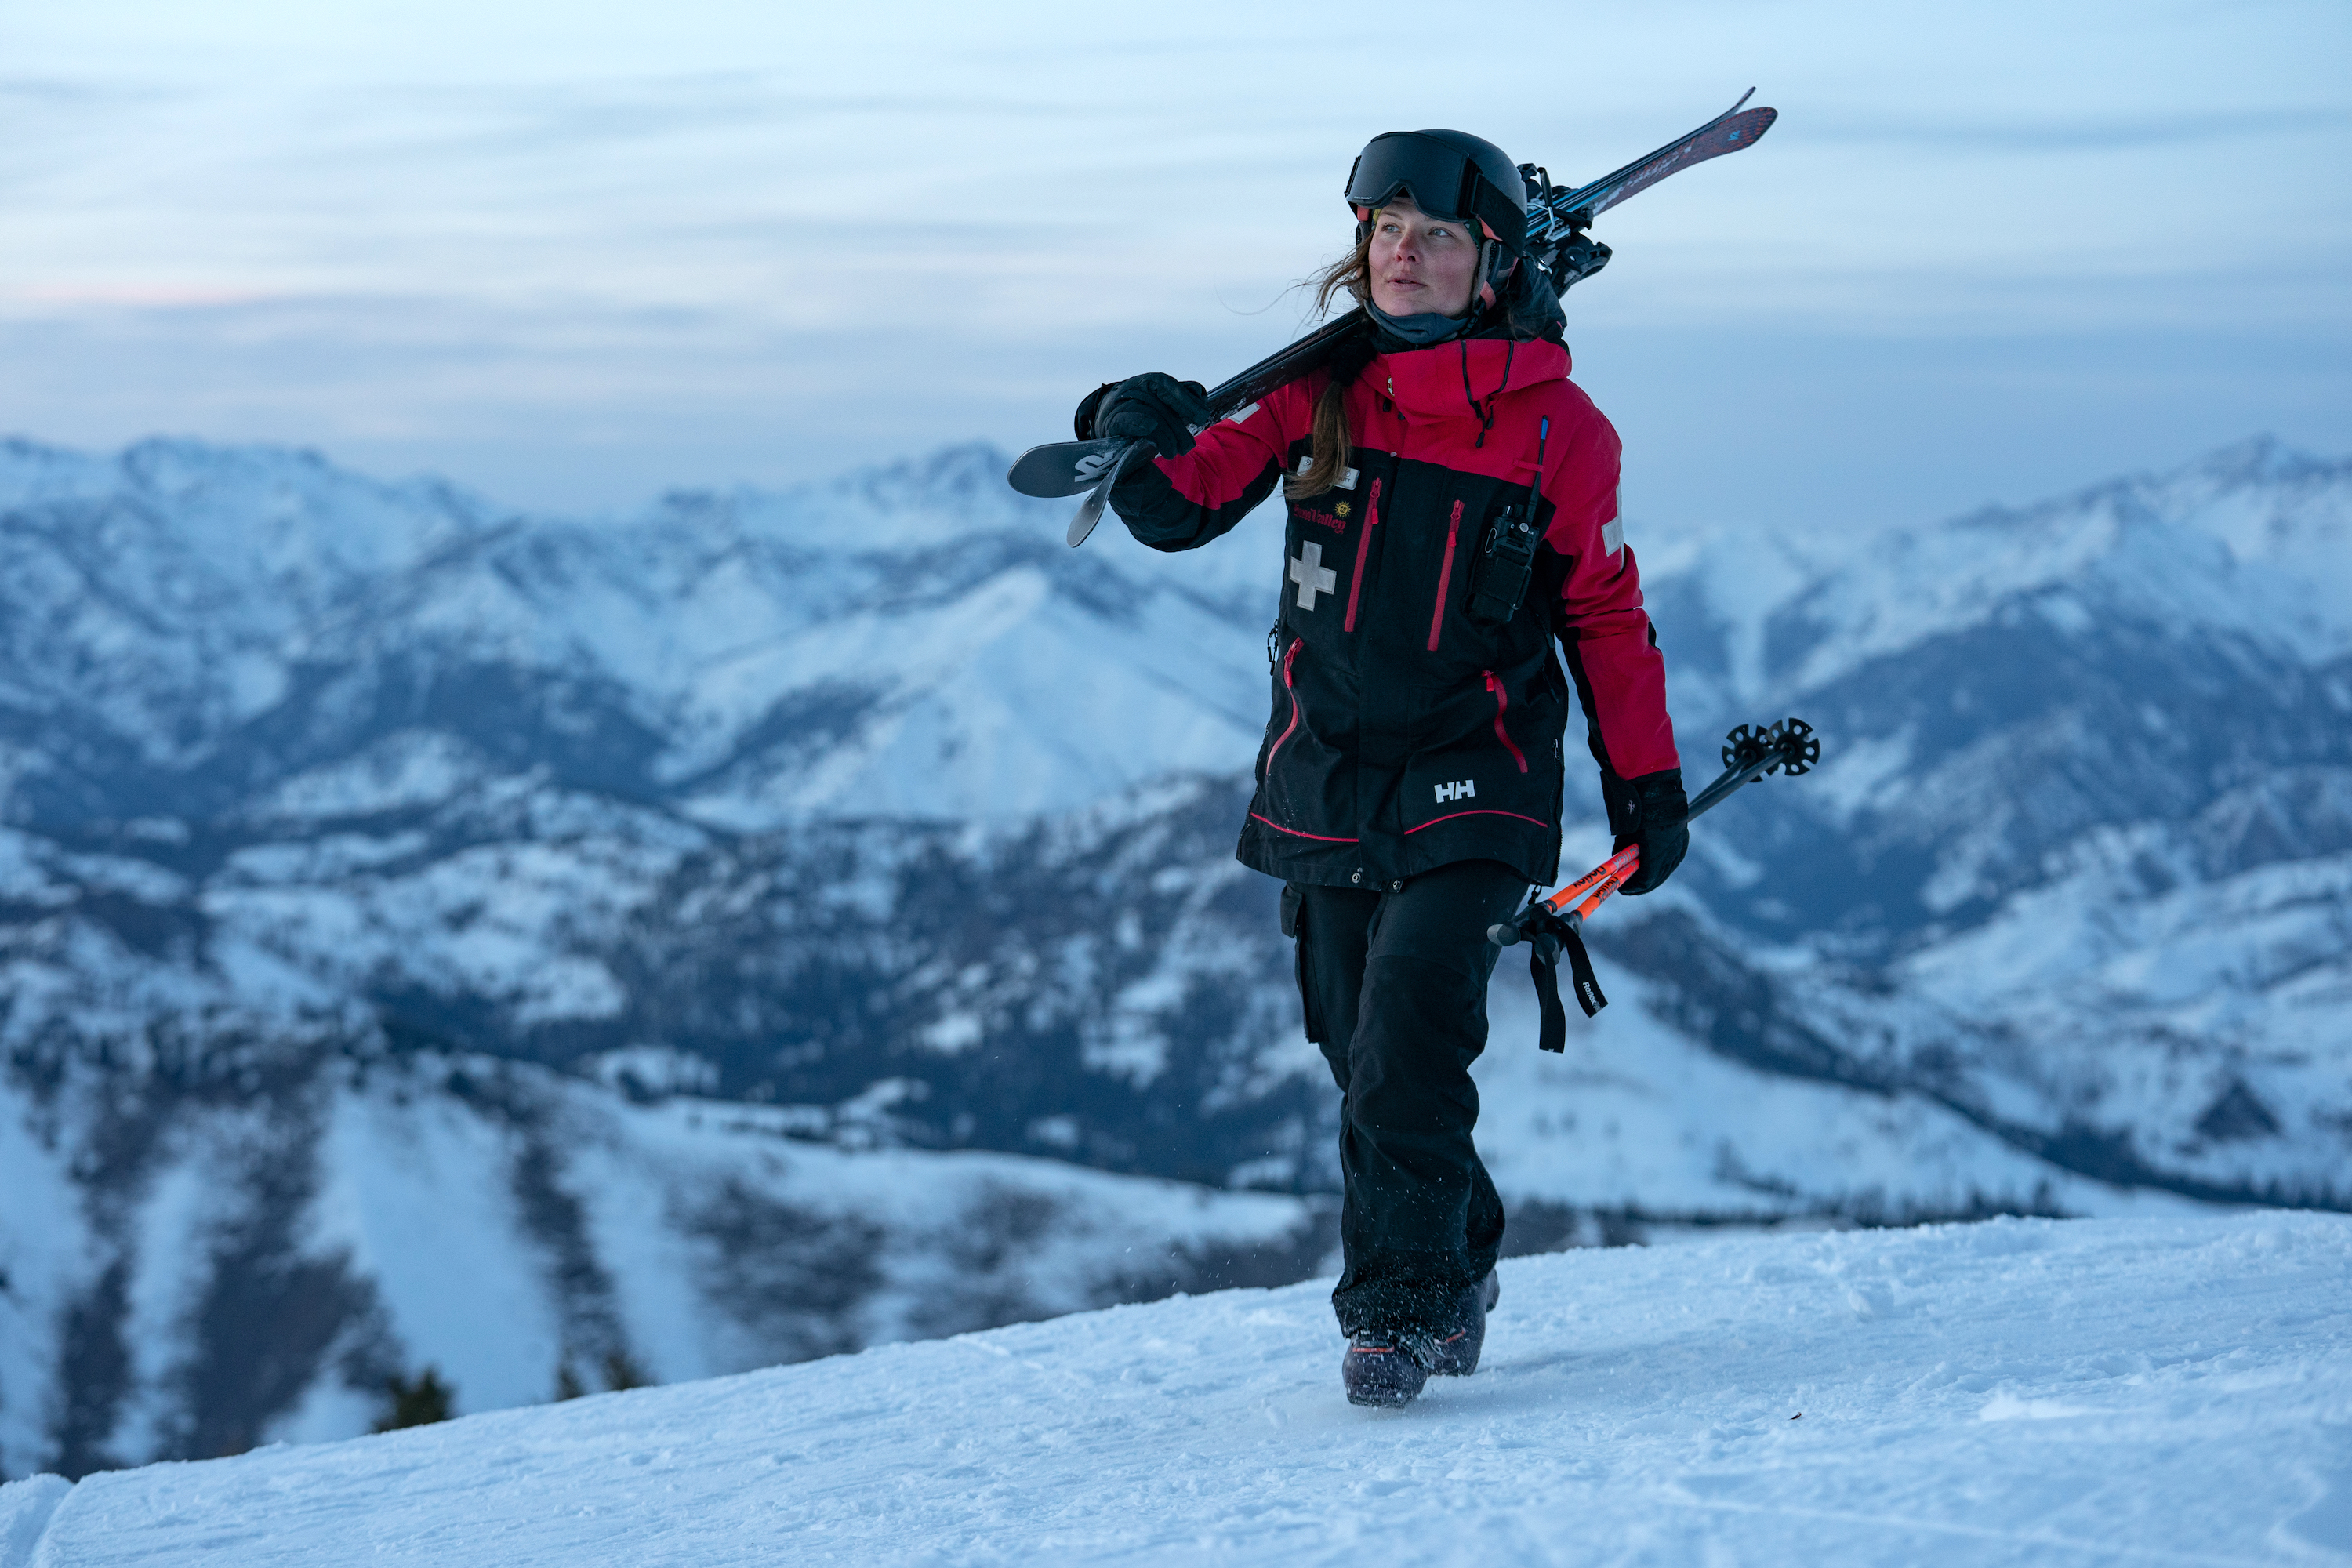 Idaho ski patroller Hannah Baybutt crossing a snow capped mountain with her skis on her shoulder